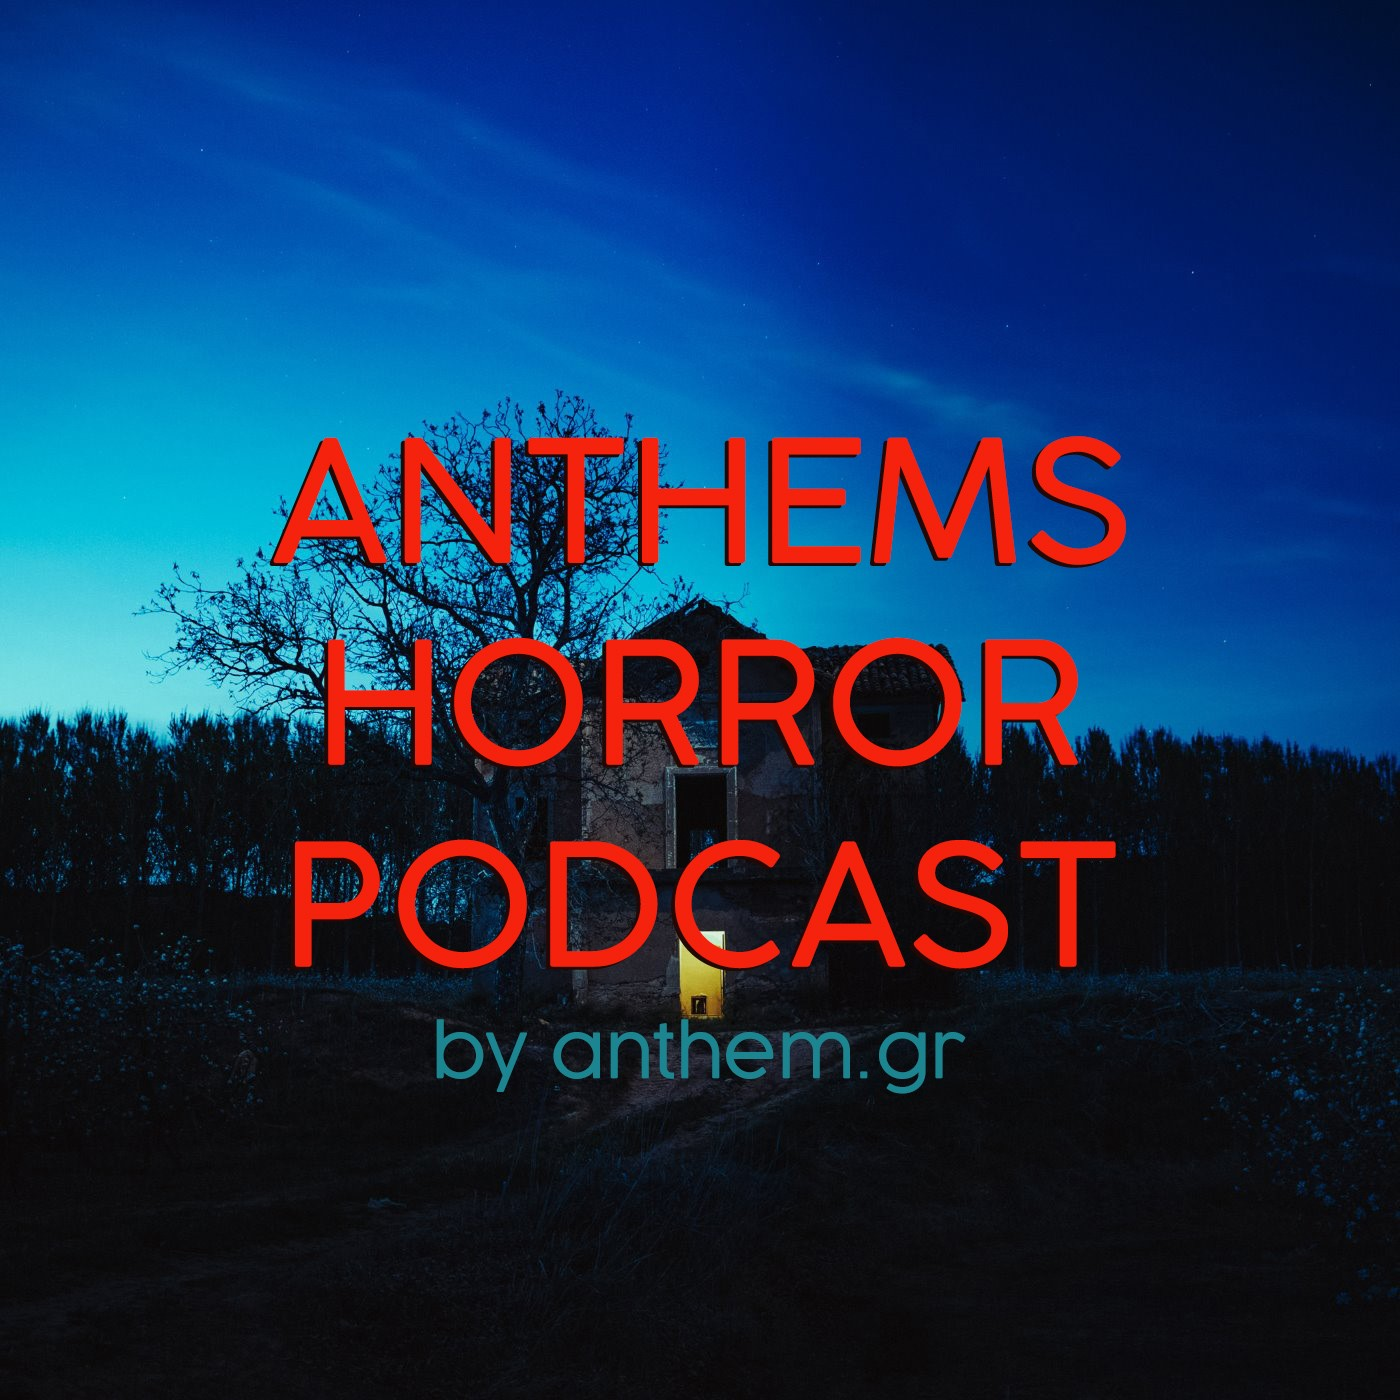 anthems horror podcast link